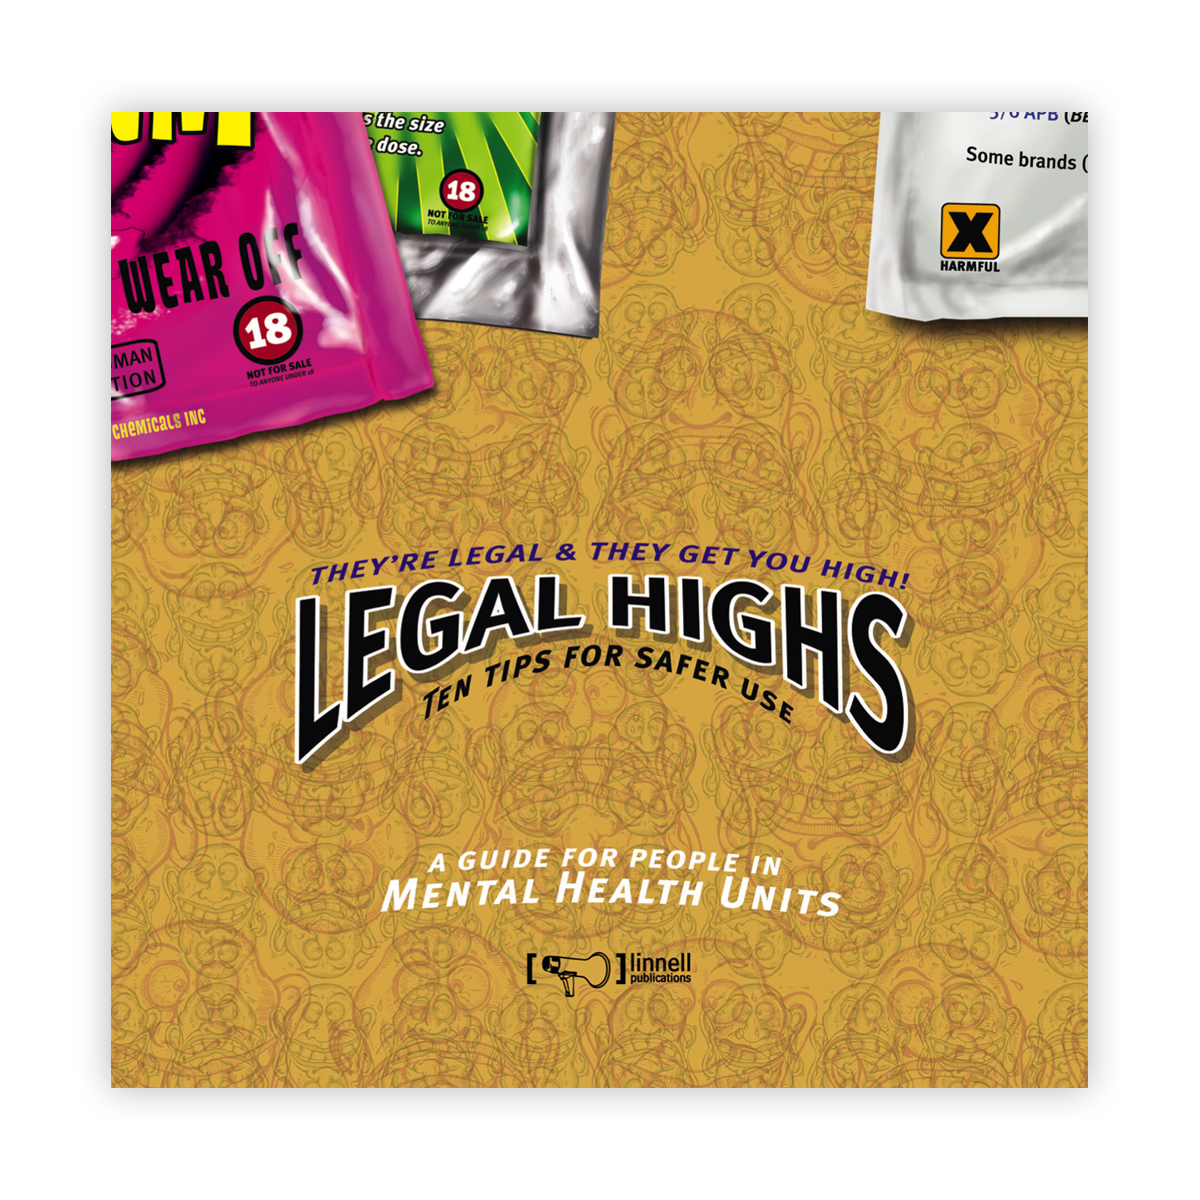 Legal Highs: a guide for people in mental health units